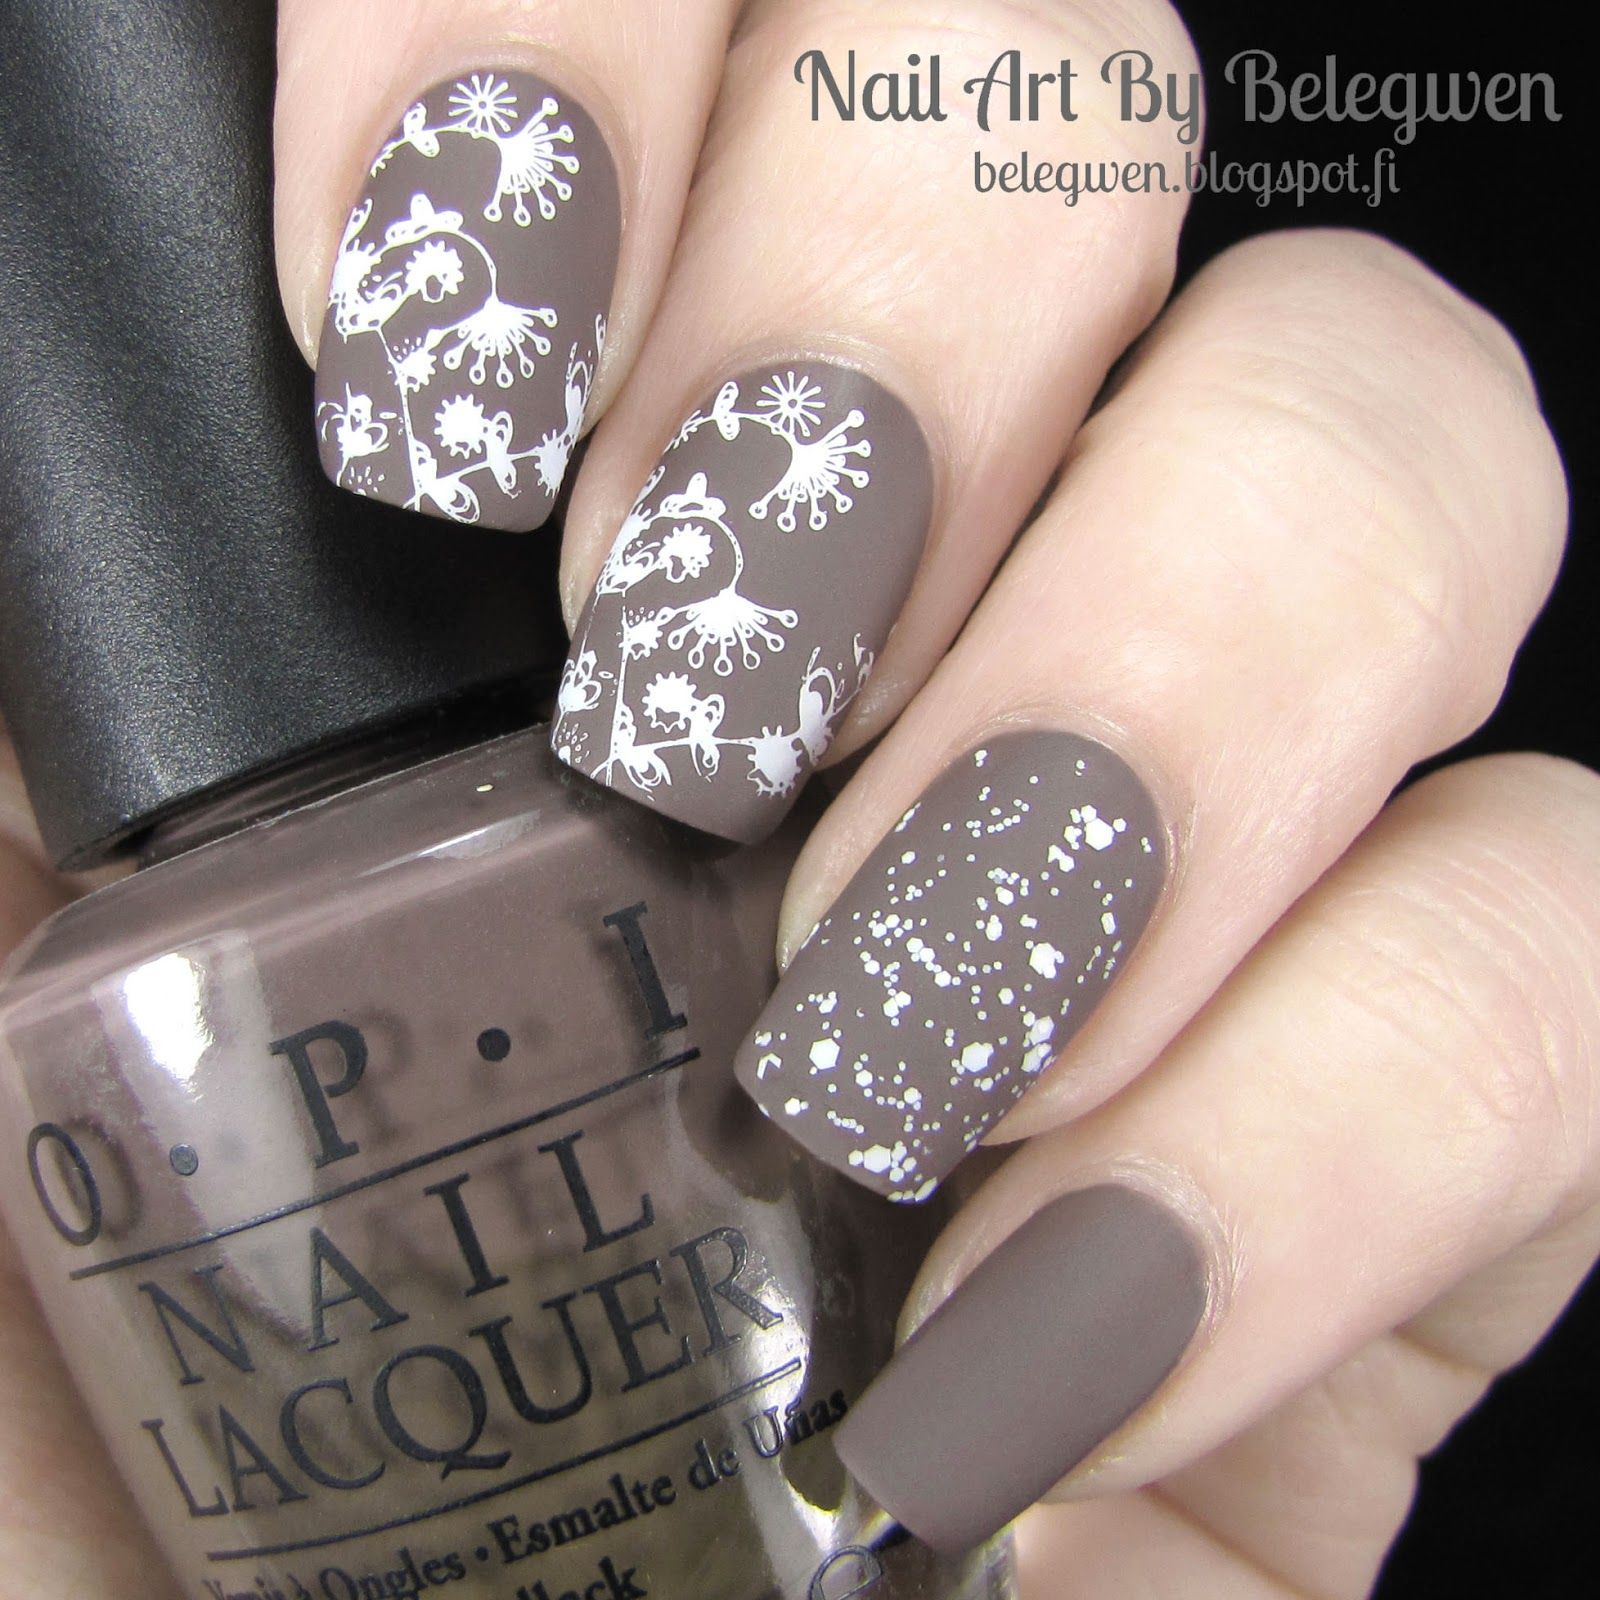 Nail Art By Belegwen: OPI You Don't Know Jacques! and Picture Polish Storm